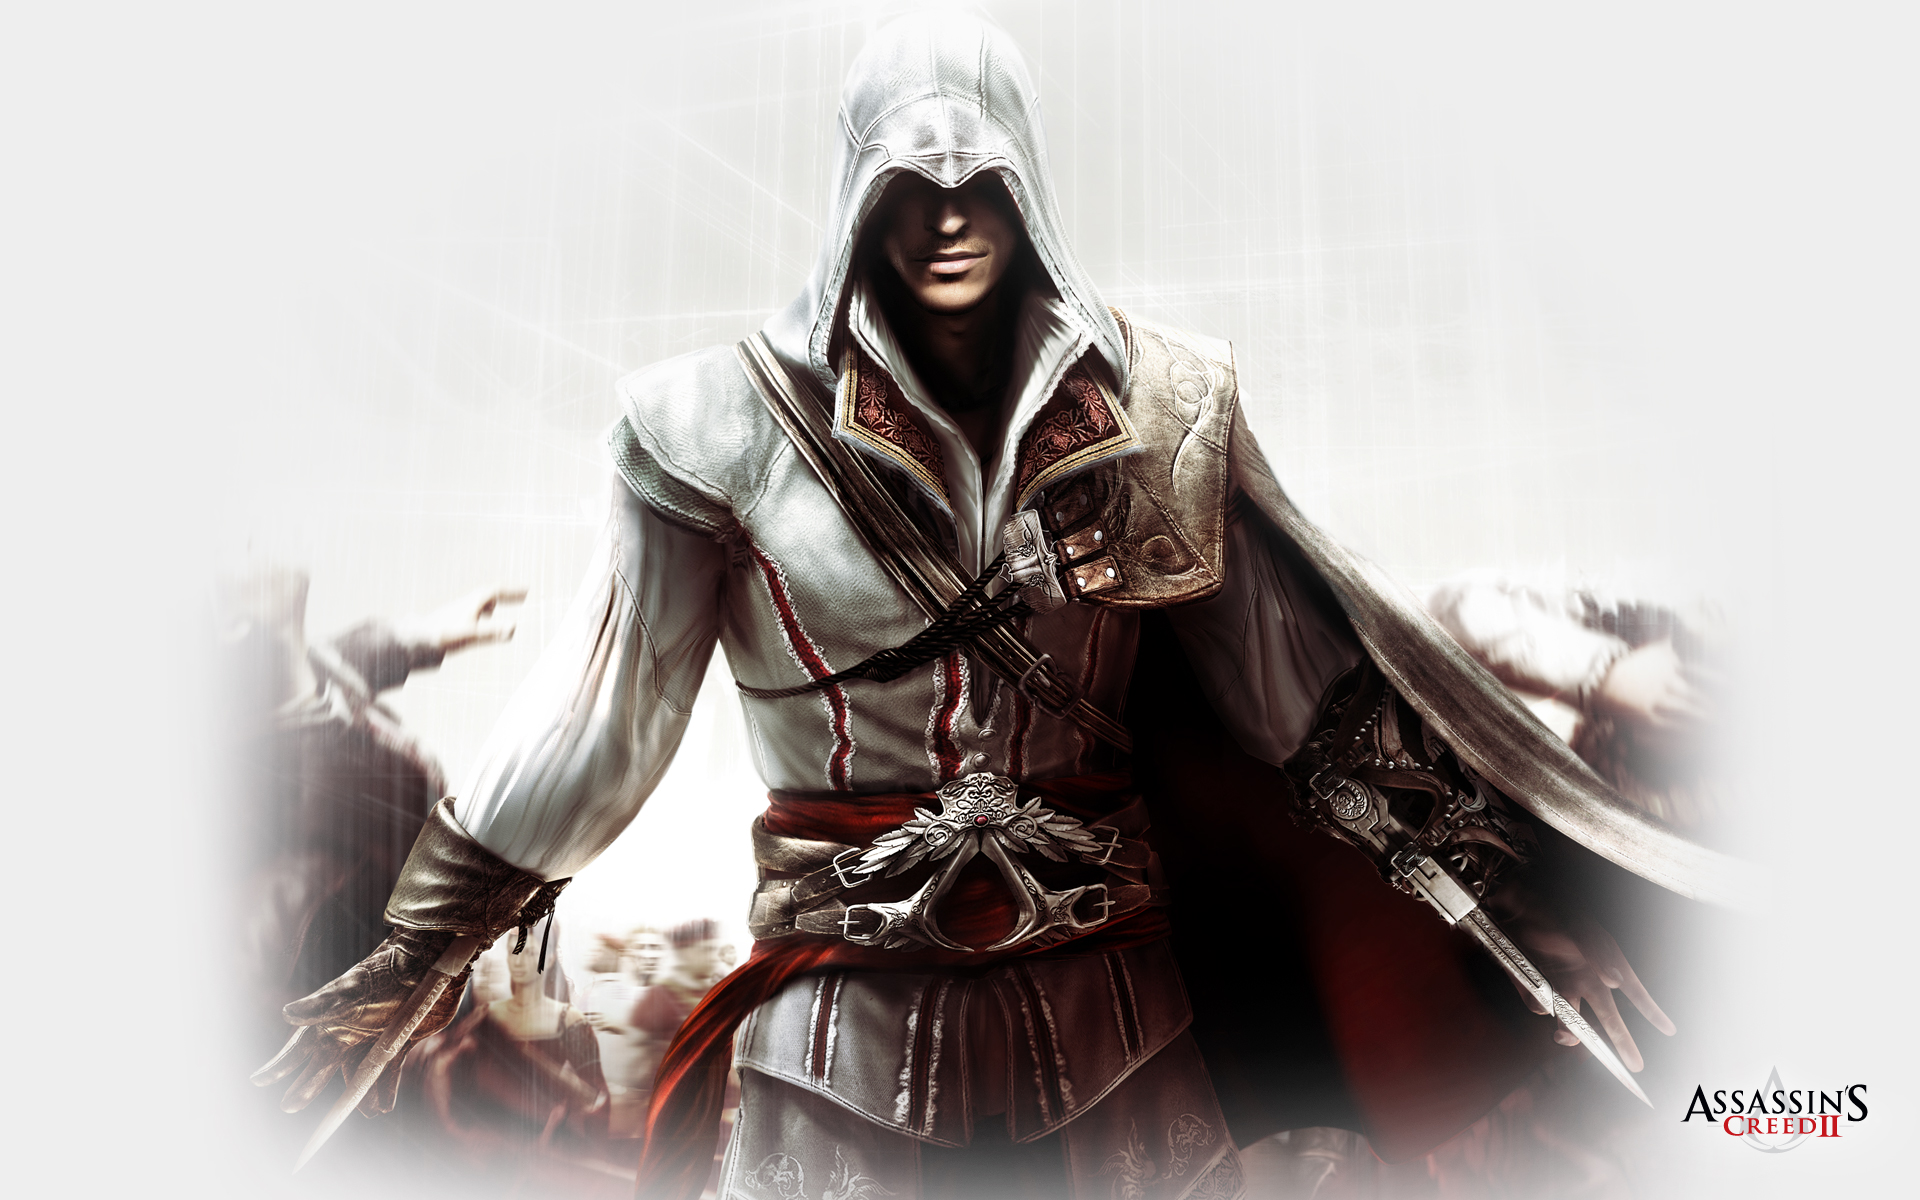 assassins-creed-2-wallpaper-ezio-1920x1200.jpg